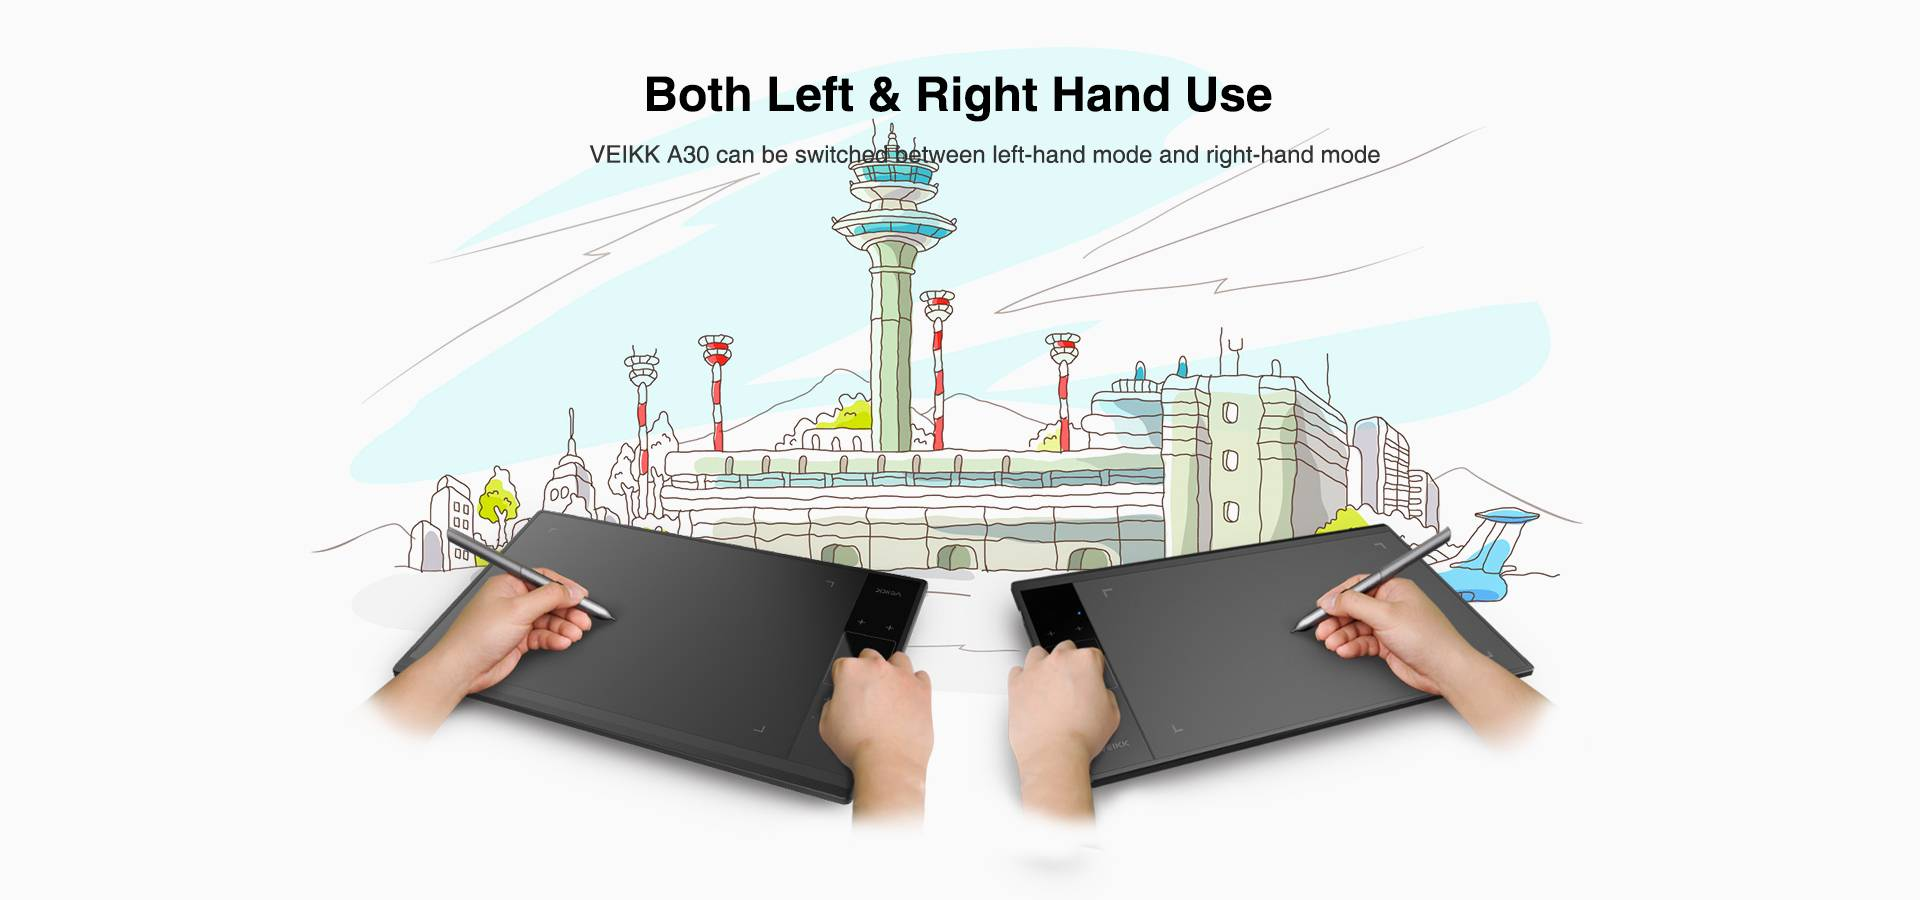 Both Left & Right Hand Use